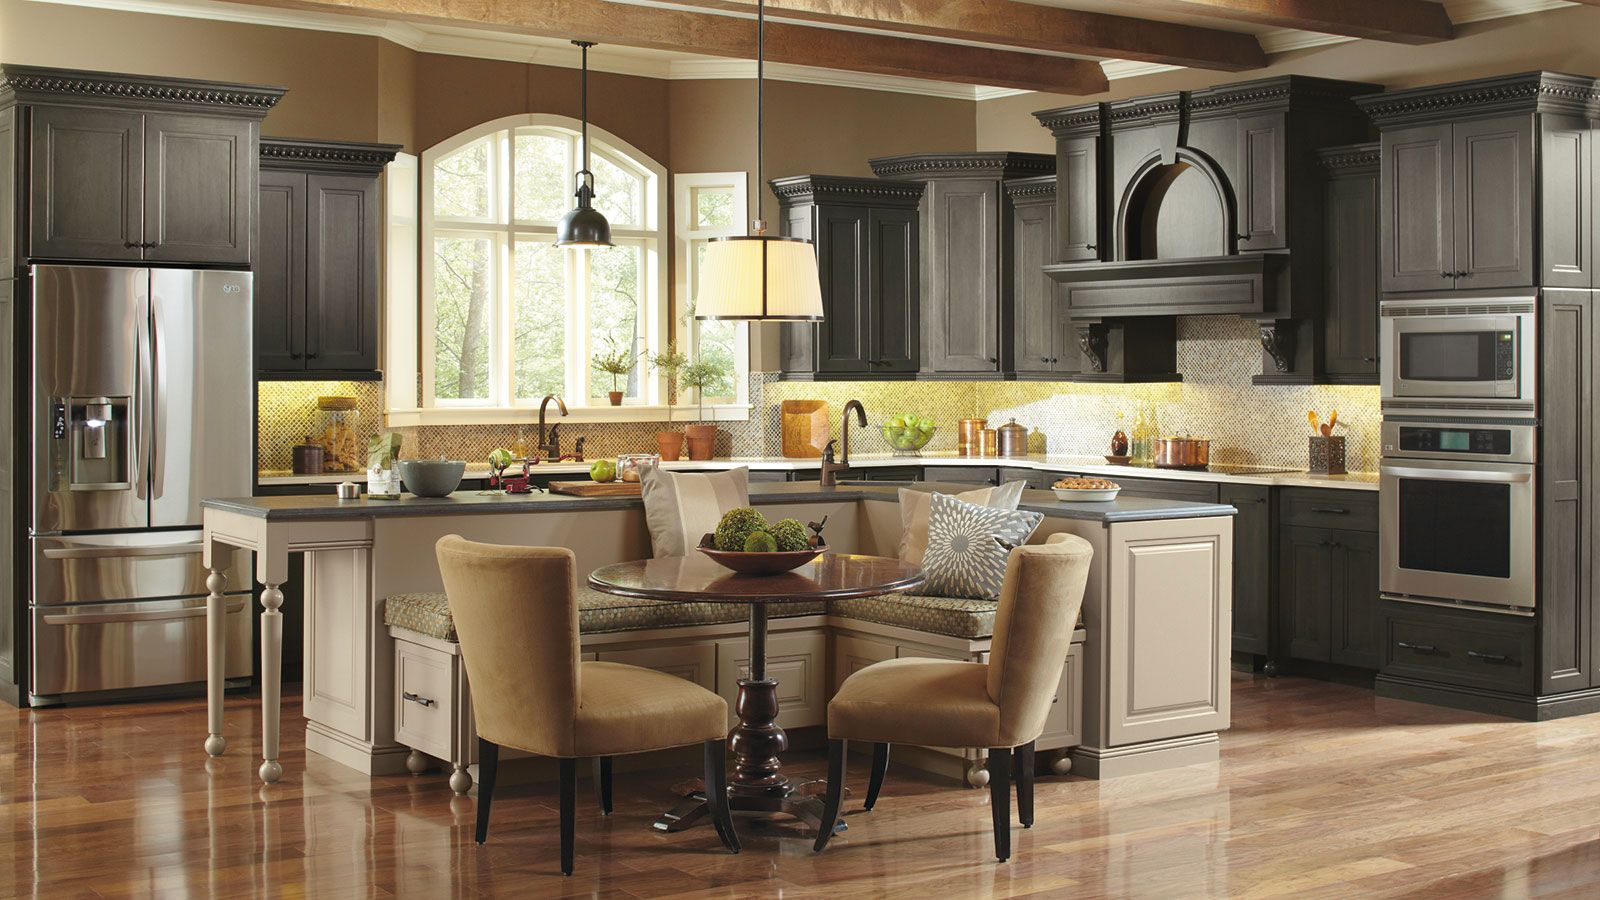 Casual Kitchen Cabinets Ideas on casual kitchen ideas, casual rustic kitchen, martha stewart cabinets, casual landscaping, casual country kitchens, casual kitchen tables, casual kitchen flooring, casual kitchen styles, casual lamps, casual contemporary kitchens, casual kitchen seating, casual kitchen lighting, mixing dark and light cabinets, decora cabinets, casual kitchen hutch, casual restaurants, casual kitchen design, kitchens with dark upper cabinets, casual home, casual kitchen islands,